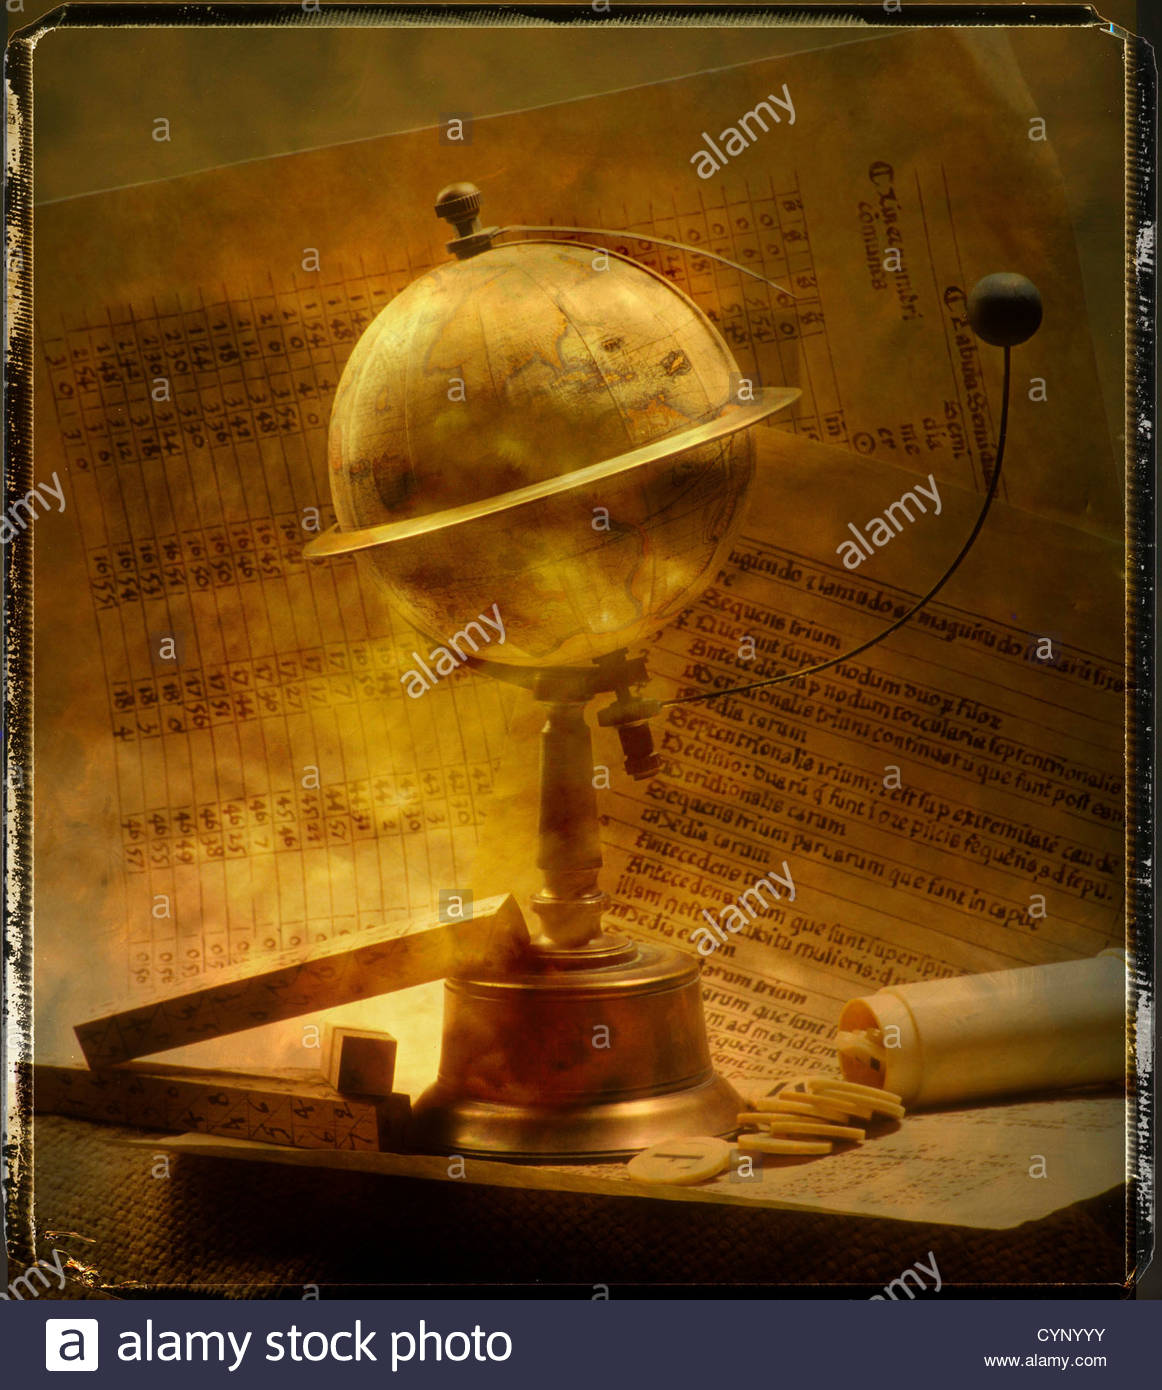 Antique globe with moon on stand - Stock Image